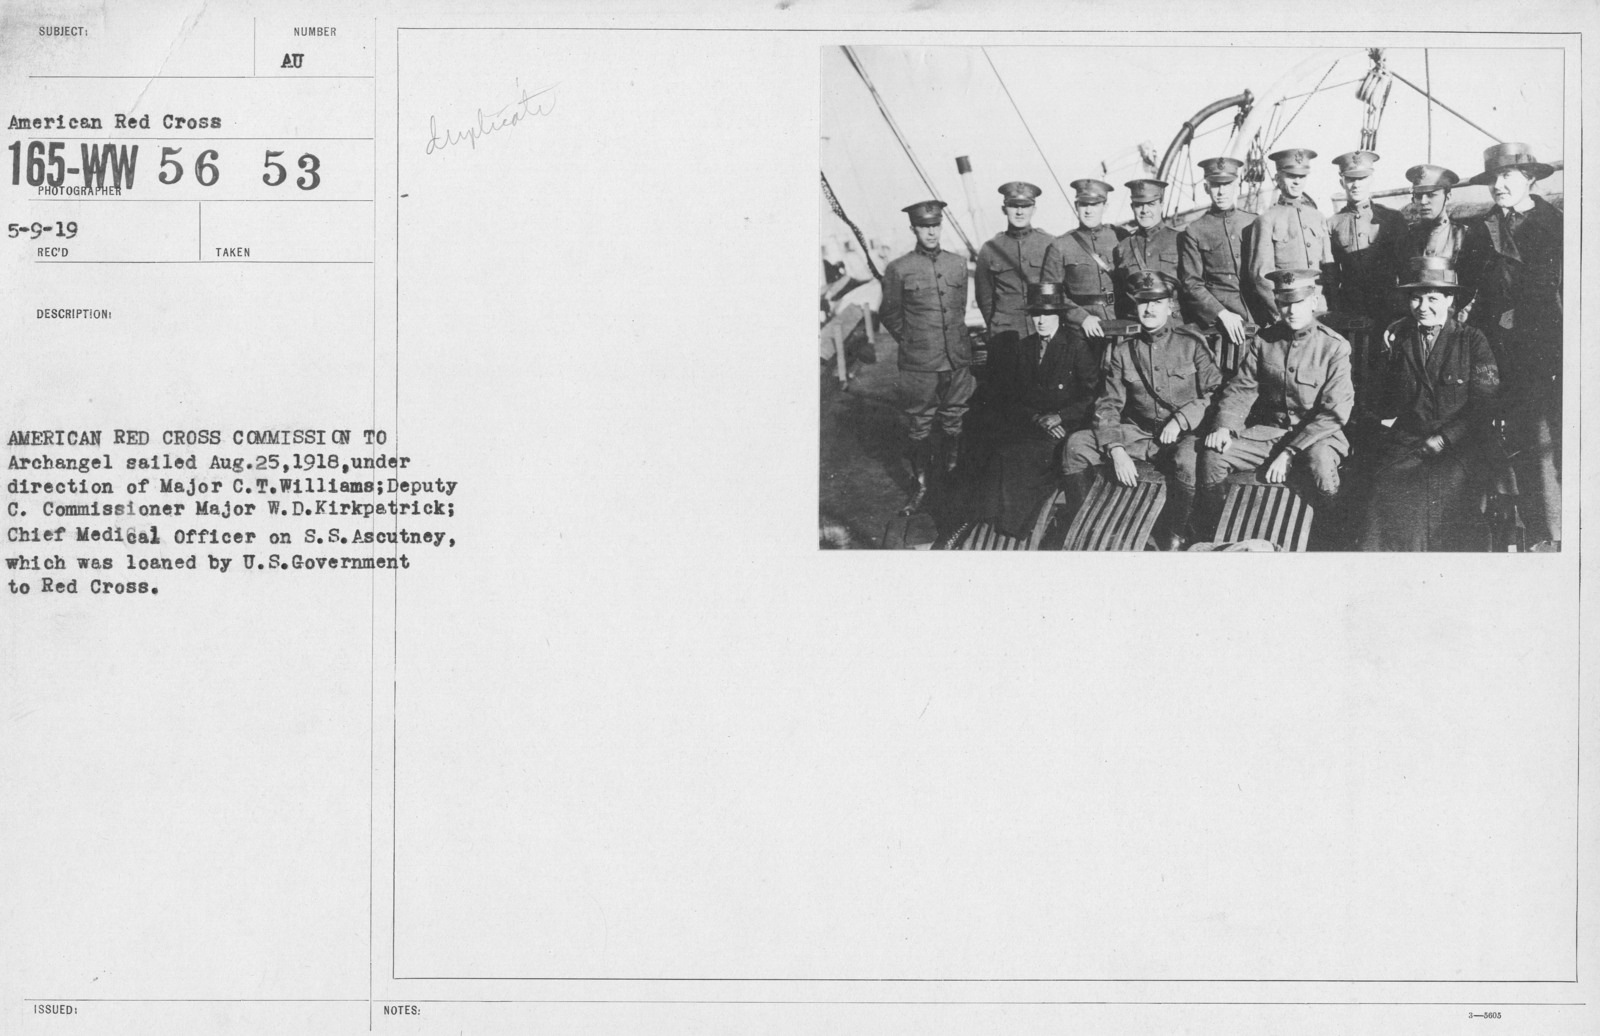 American Red Cross - Groups - American Red Cross Commission to Archangel sailed Aug. 25, 1918, under direction of Major C.T. Williams; Deputy C. commissioner Major W.D. Kirkpatrick; Chief Medical Officer on S.S. Ascutney, which was loaned by U.S. Government to Red Cross